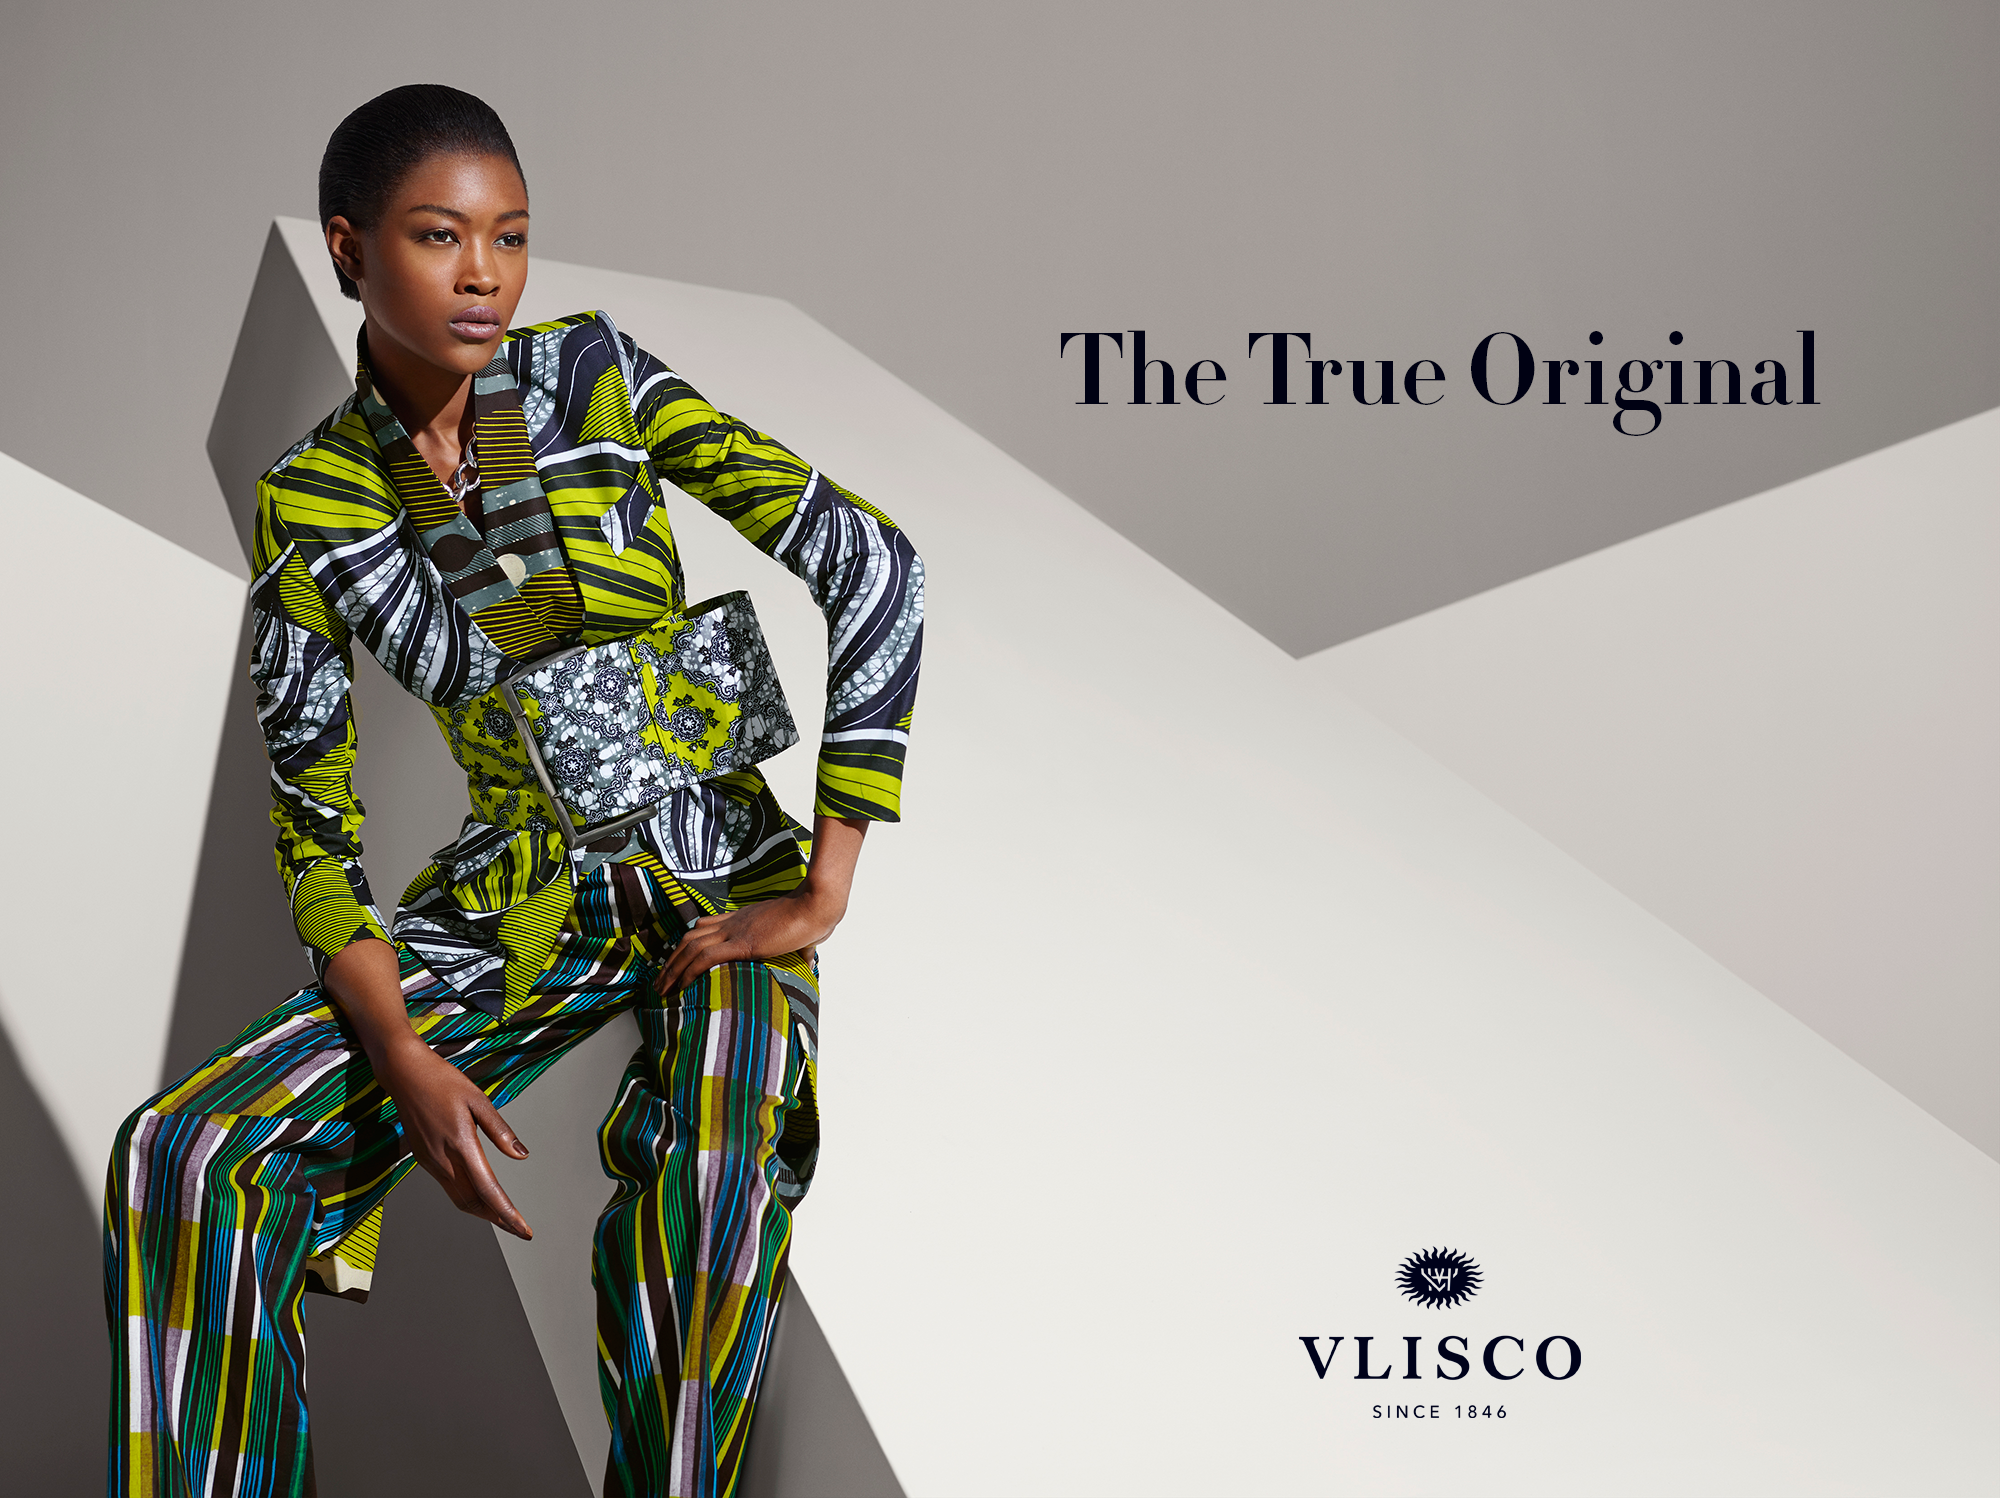 Hero our new collection is all about empowered femininity and